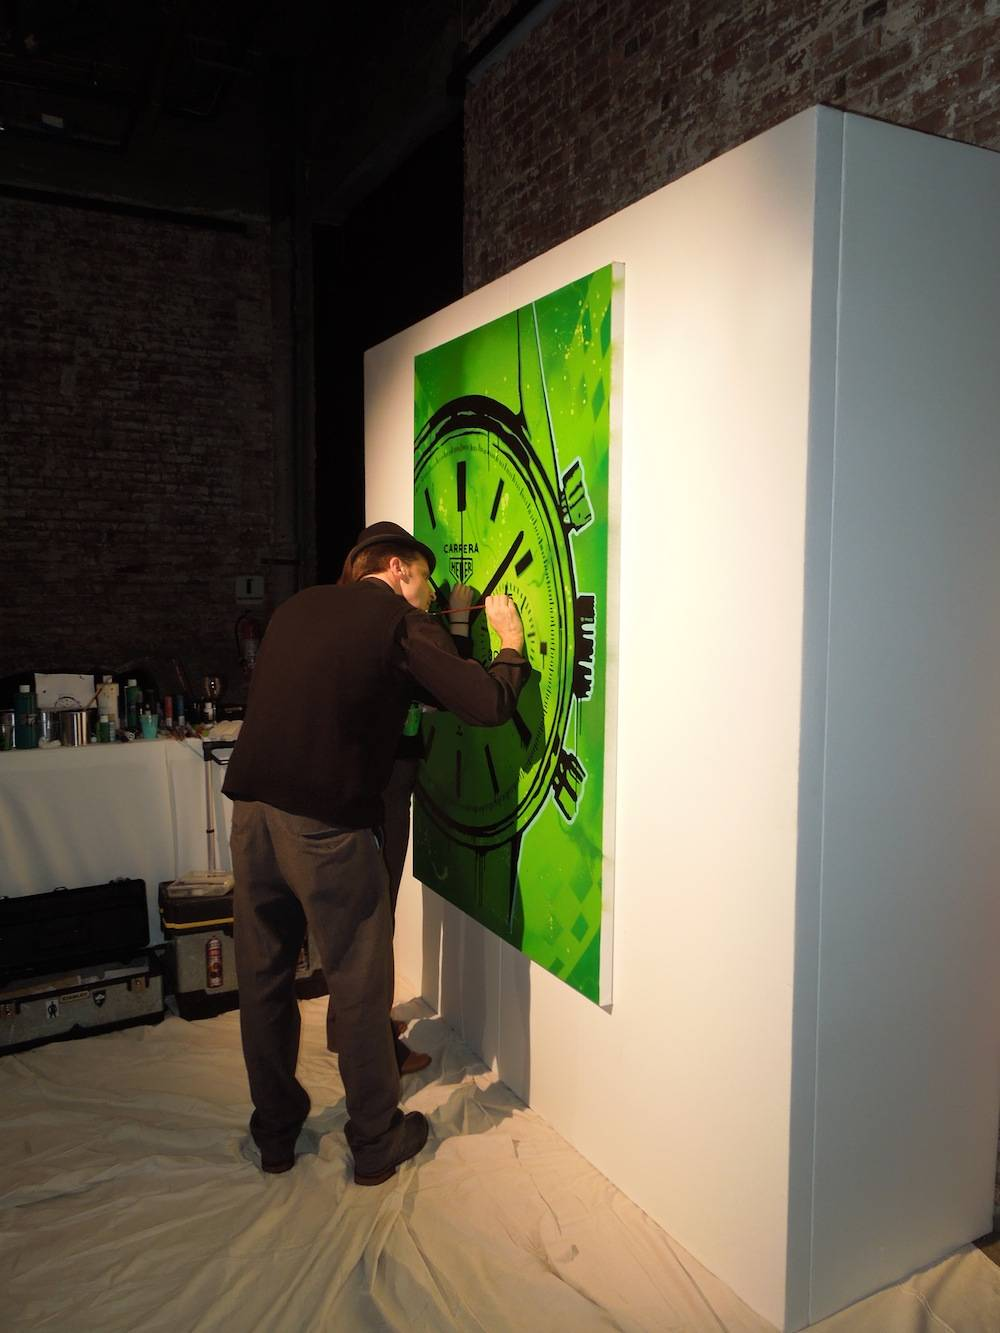 An artist painting a commemorative mural for TAG Heuer Carrera